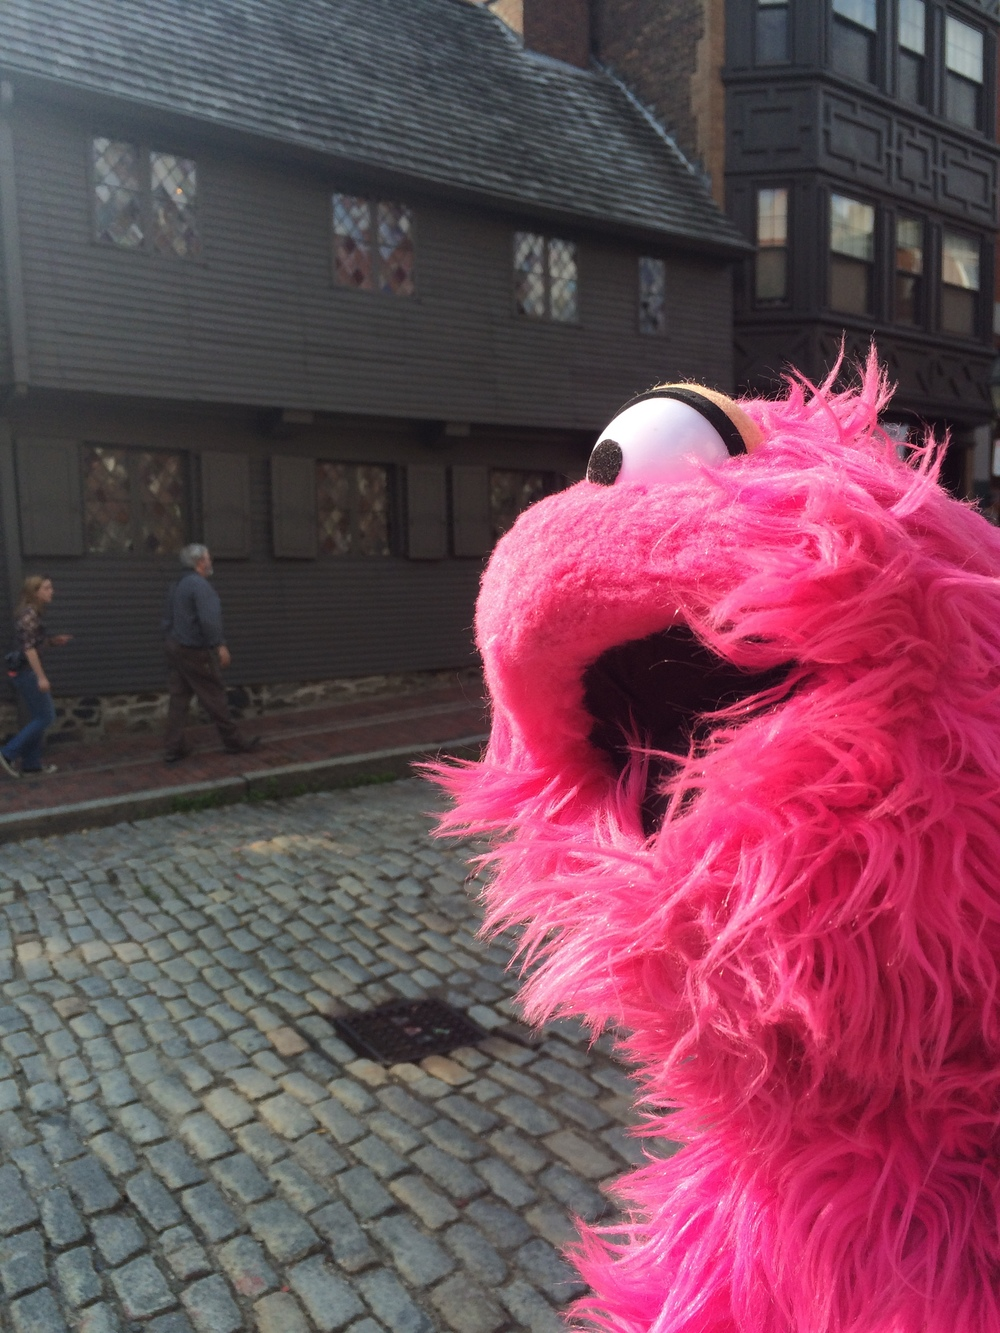 A picture of me at the Paul Revere House - One of the Stops on the Freedom Trail